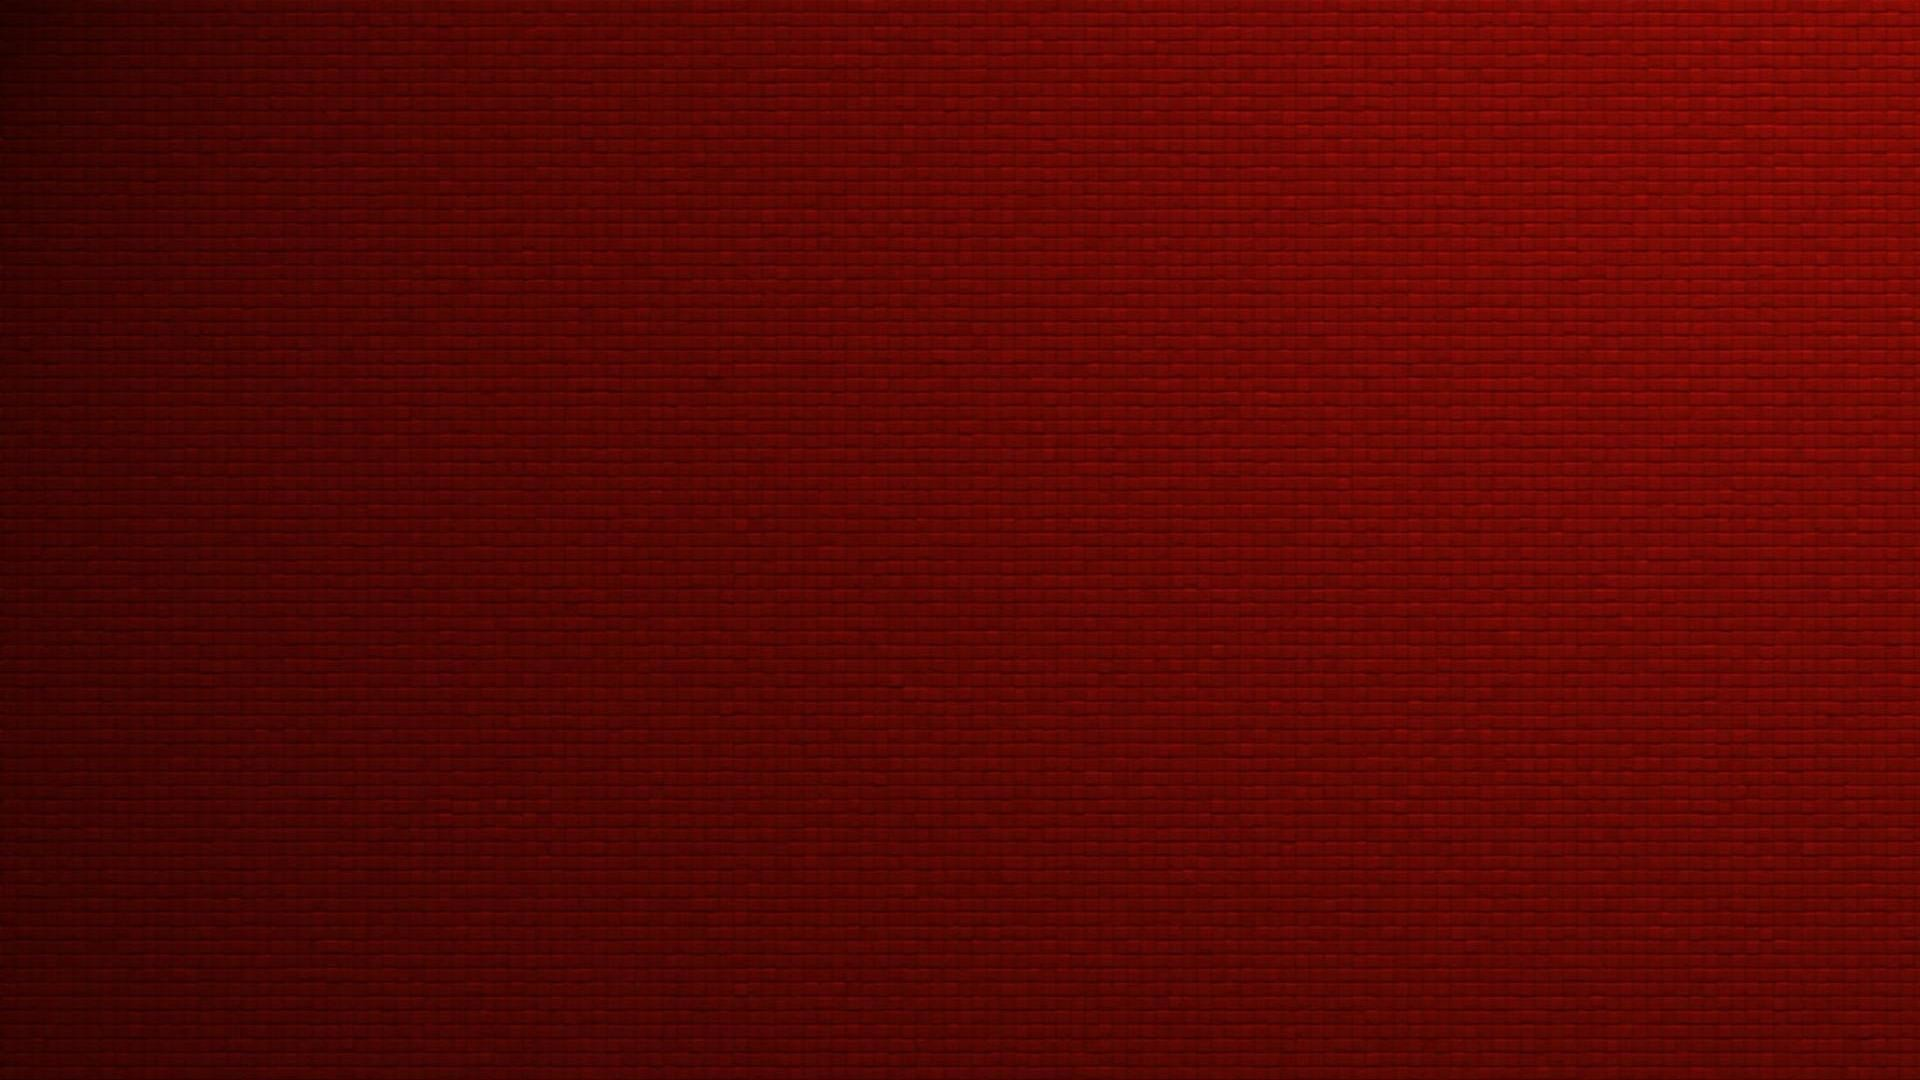 1920x1080 Red Wallpaper